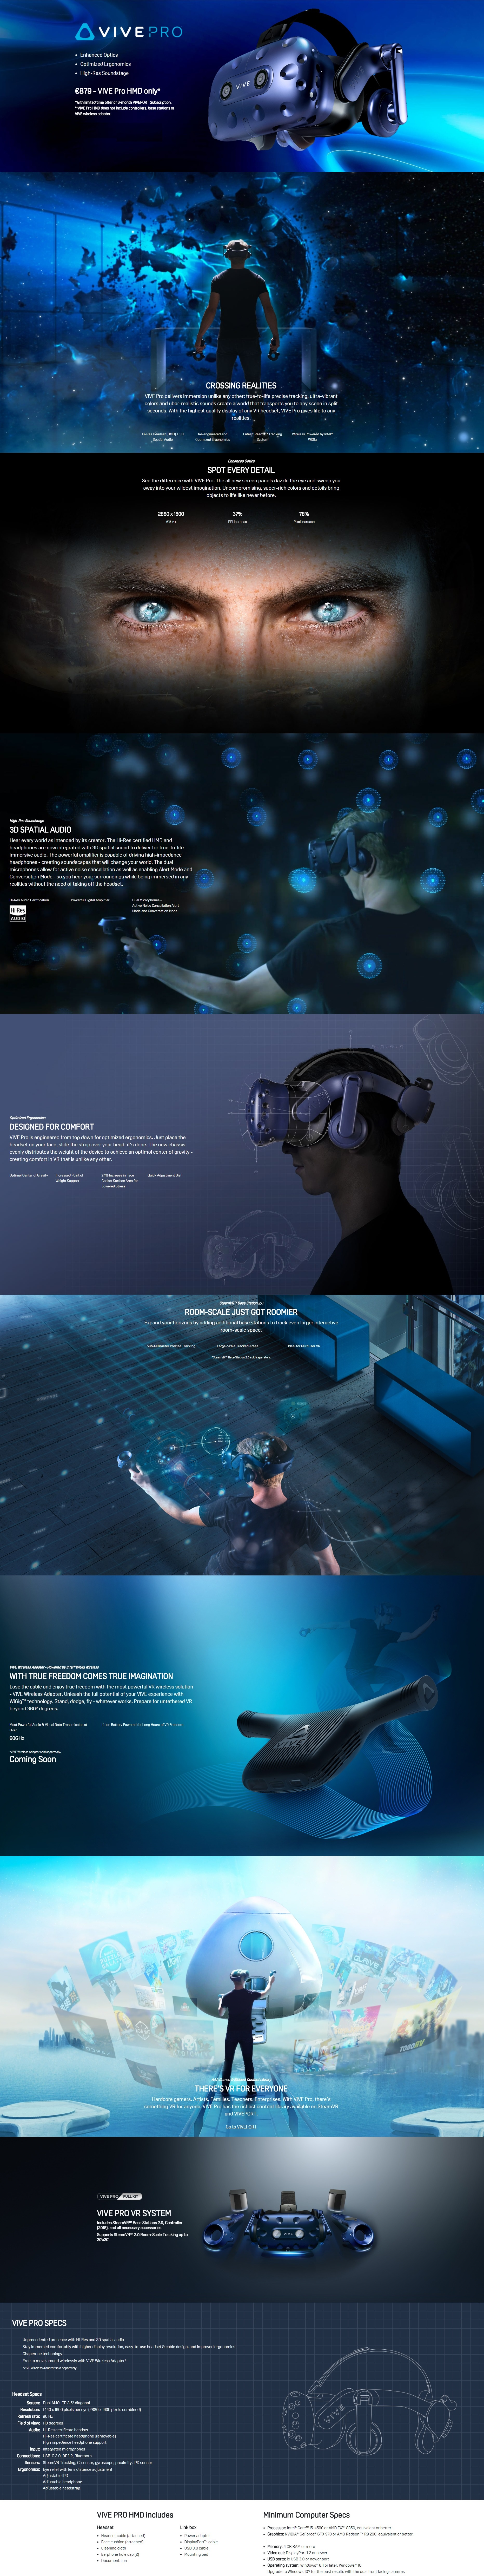 A large marketing image providing additional information about the product HTC VIVE Pro VR Headset Kit - Additional alt info not provided